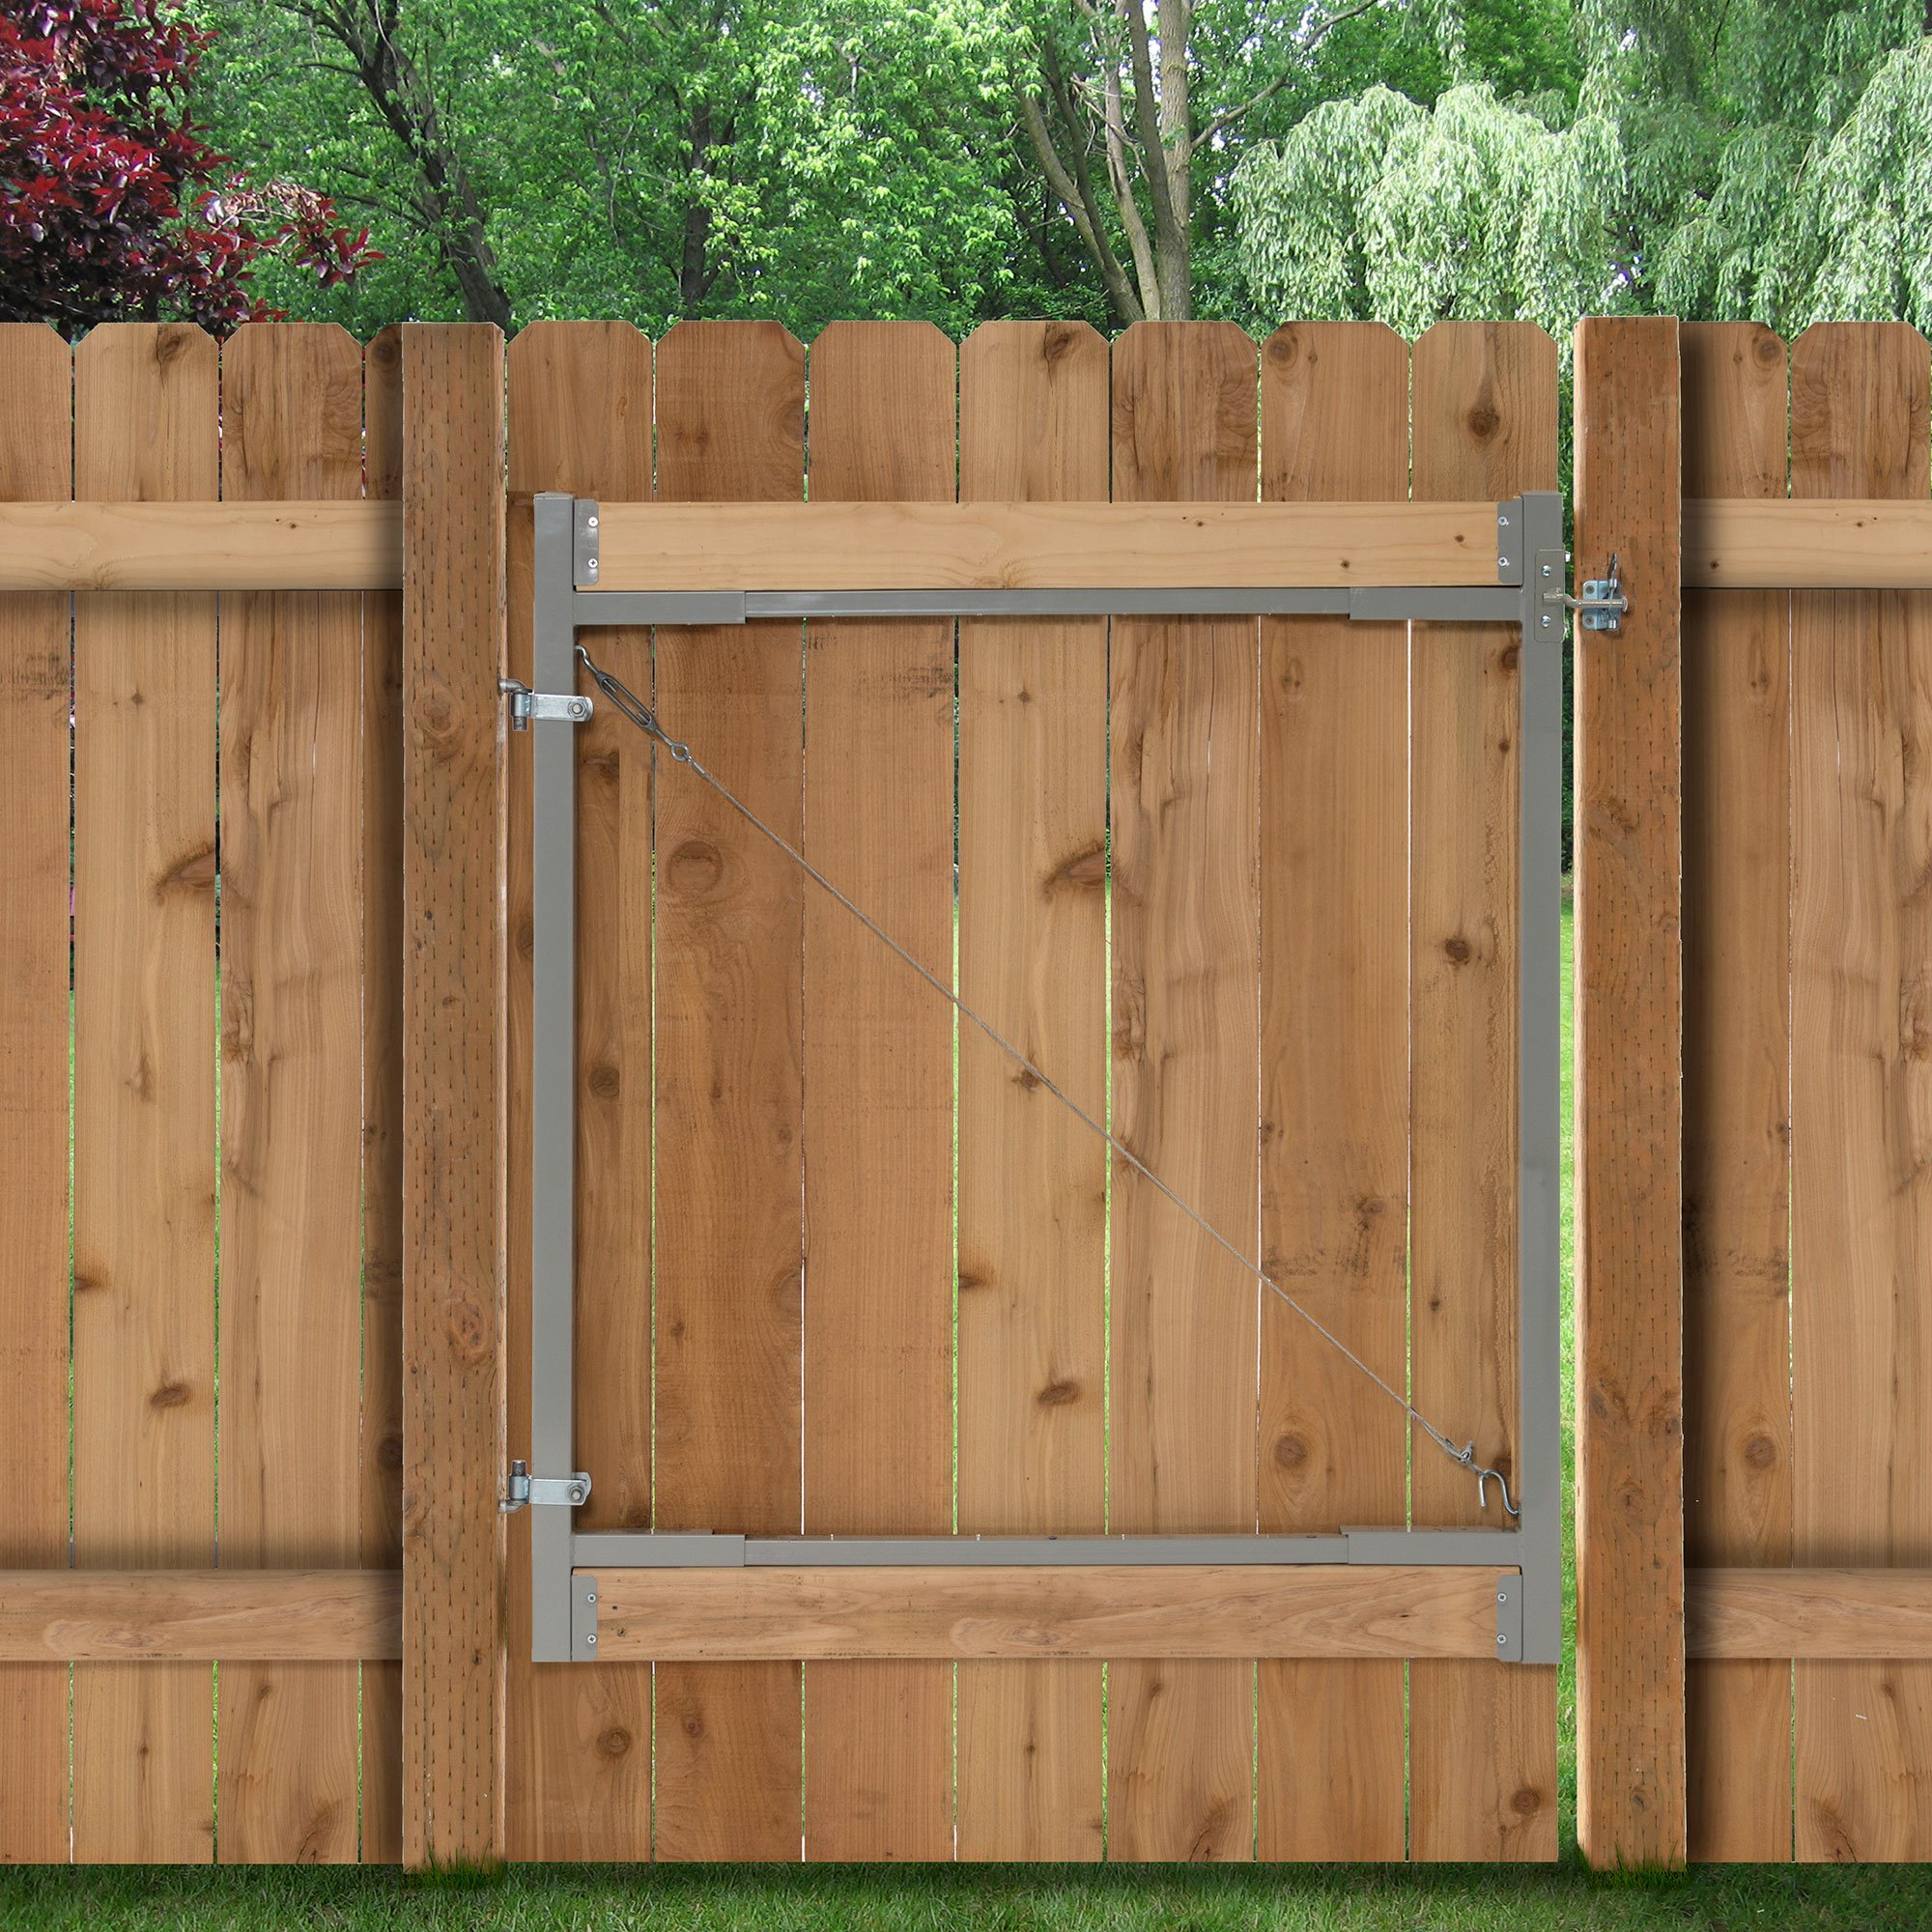 Adjust-A-Gate Gate Building Kit, 36''-72'' Wide Opening up to 6' High (3 Pack) by Adjust-A-Gate (Image #3)